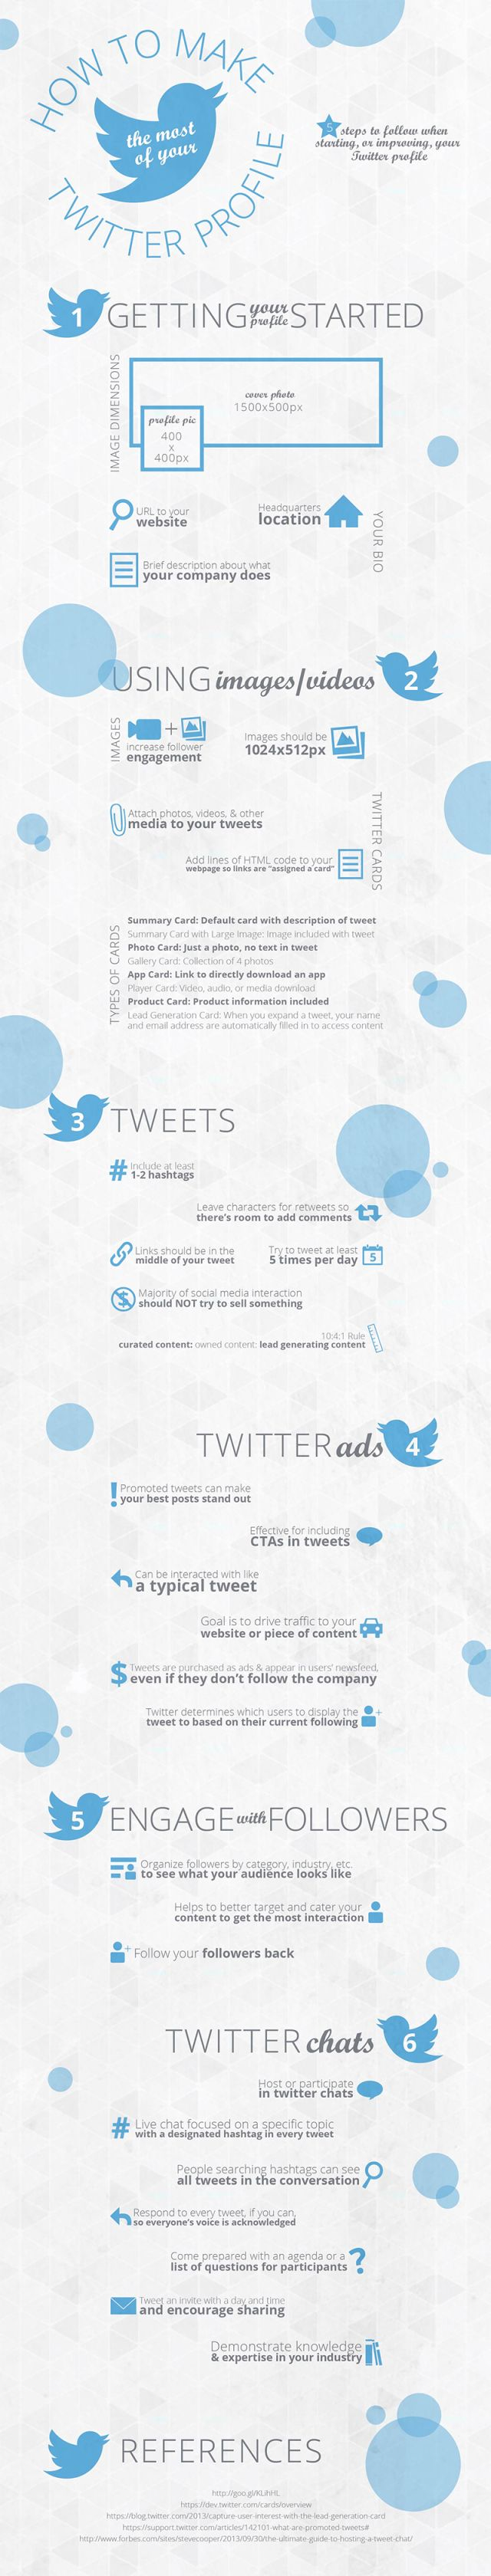 Twitter For Beginners How To Make The Most Of Your Business Profile  #Infographic Do You  How To Make Business Profile